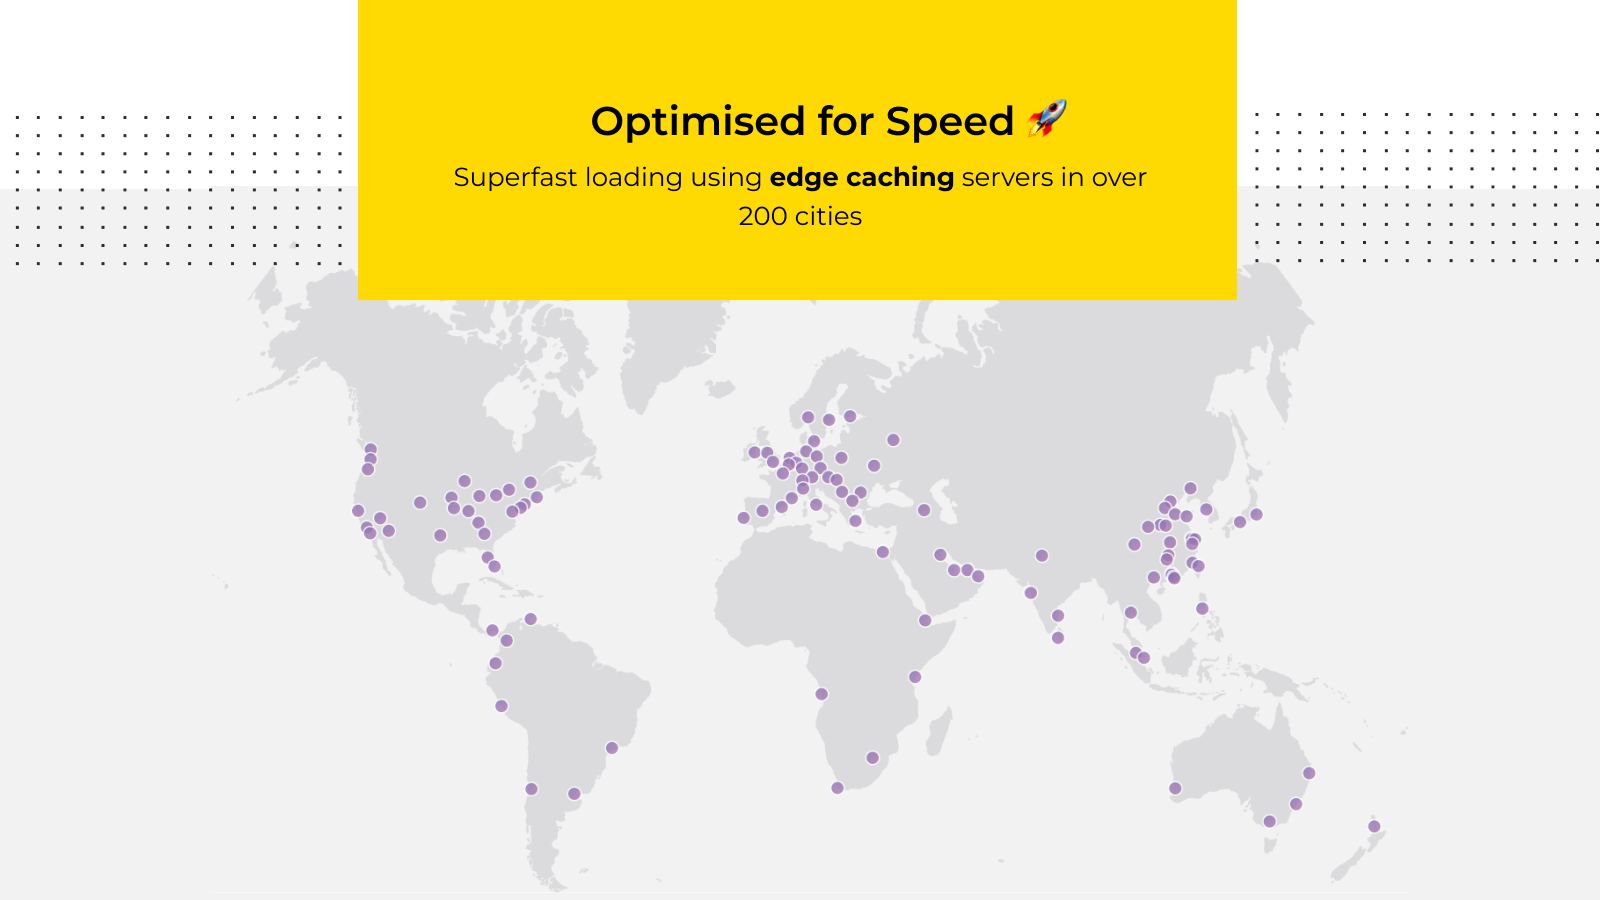 Superfast loading using edge caching servers in over 200 cities